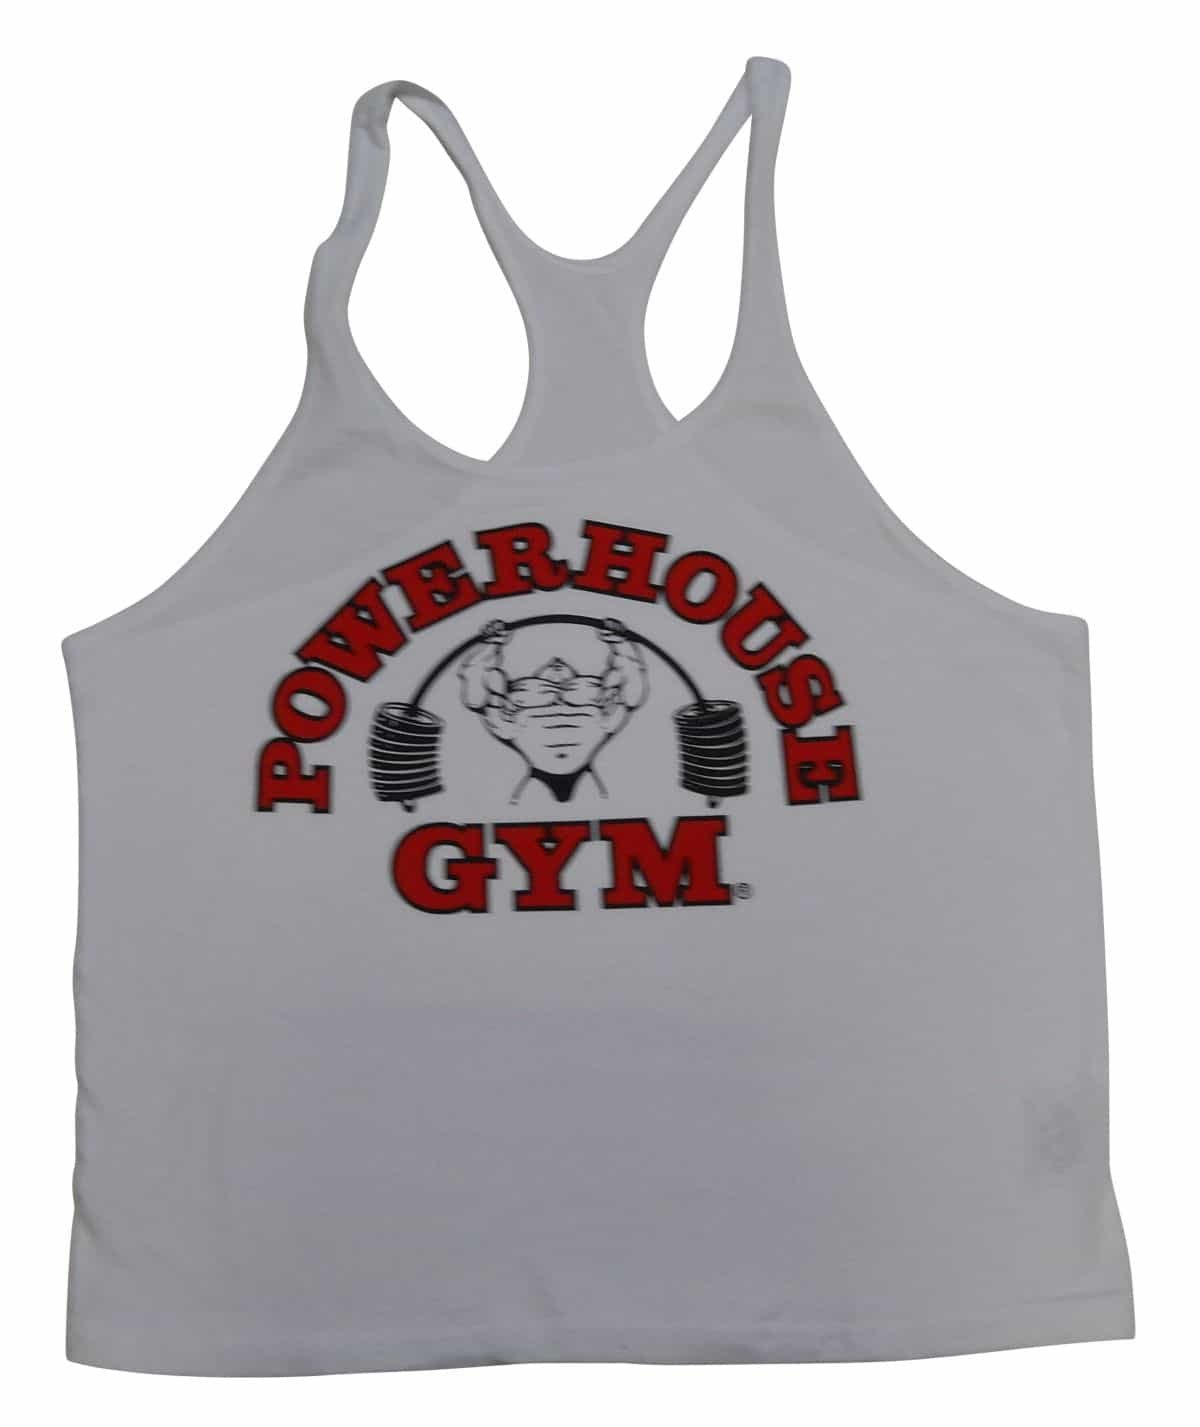 powerhouse-gym-stringer-tank-top-5